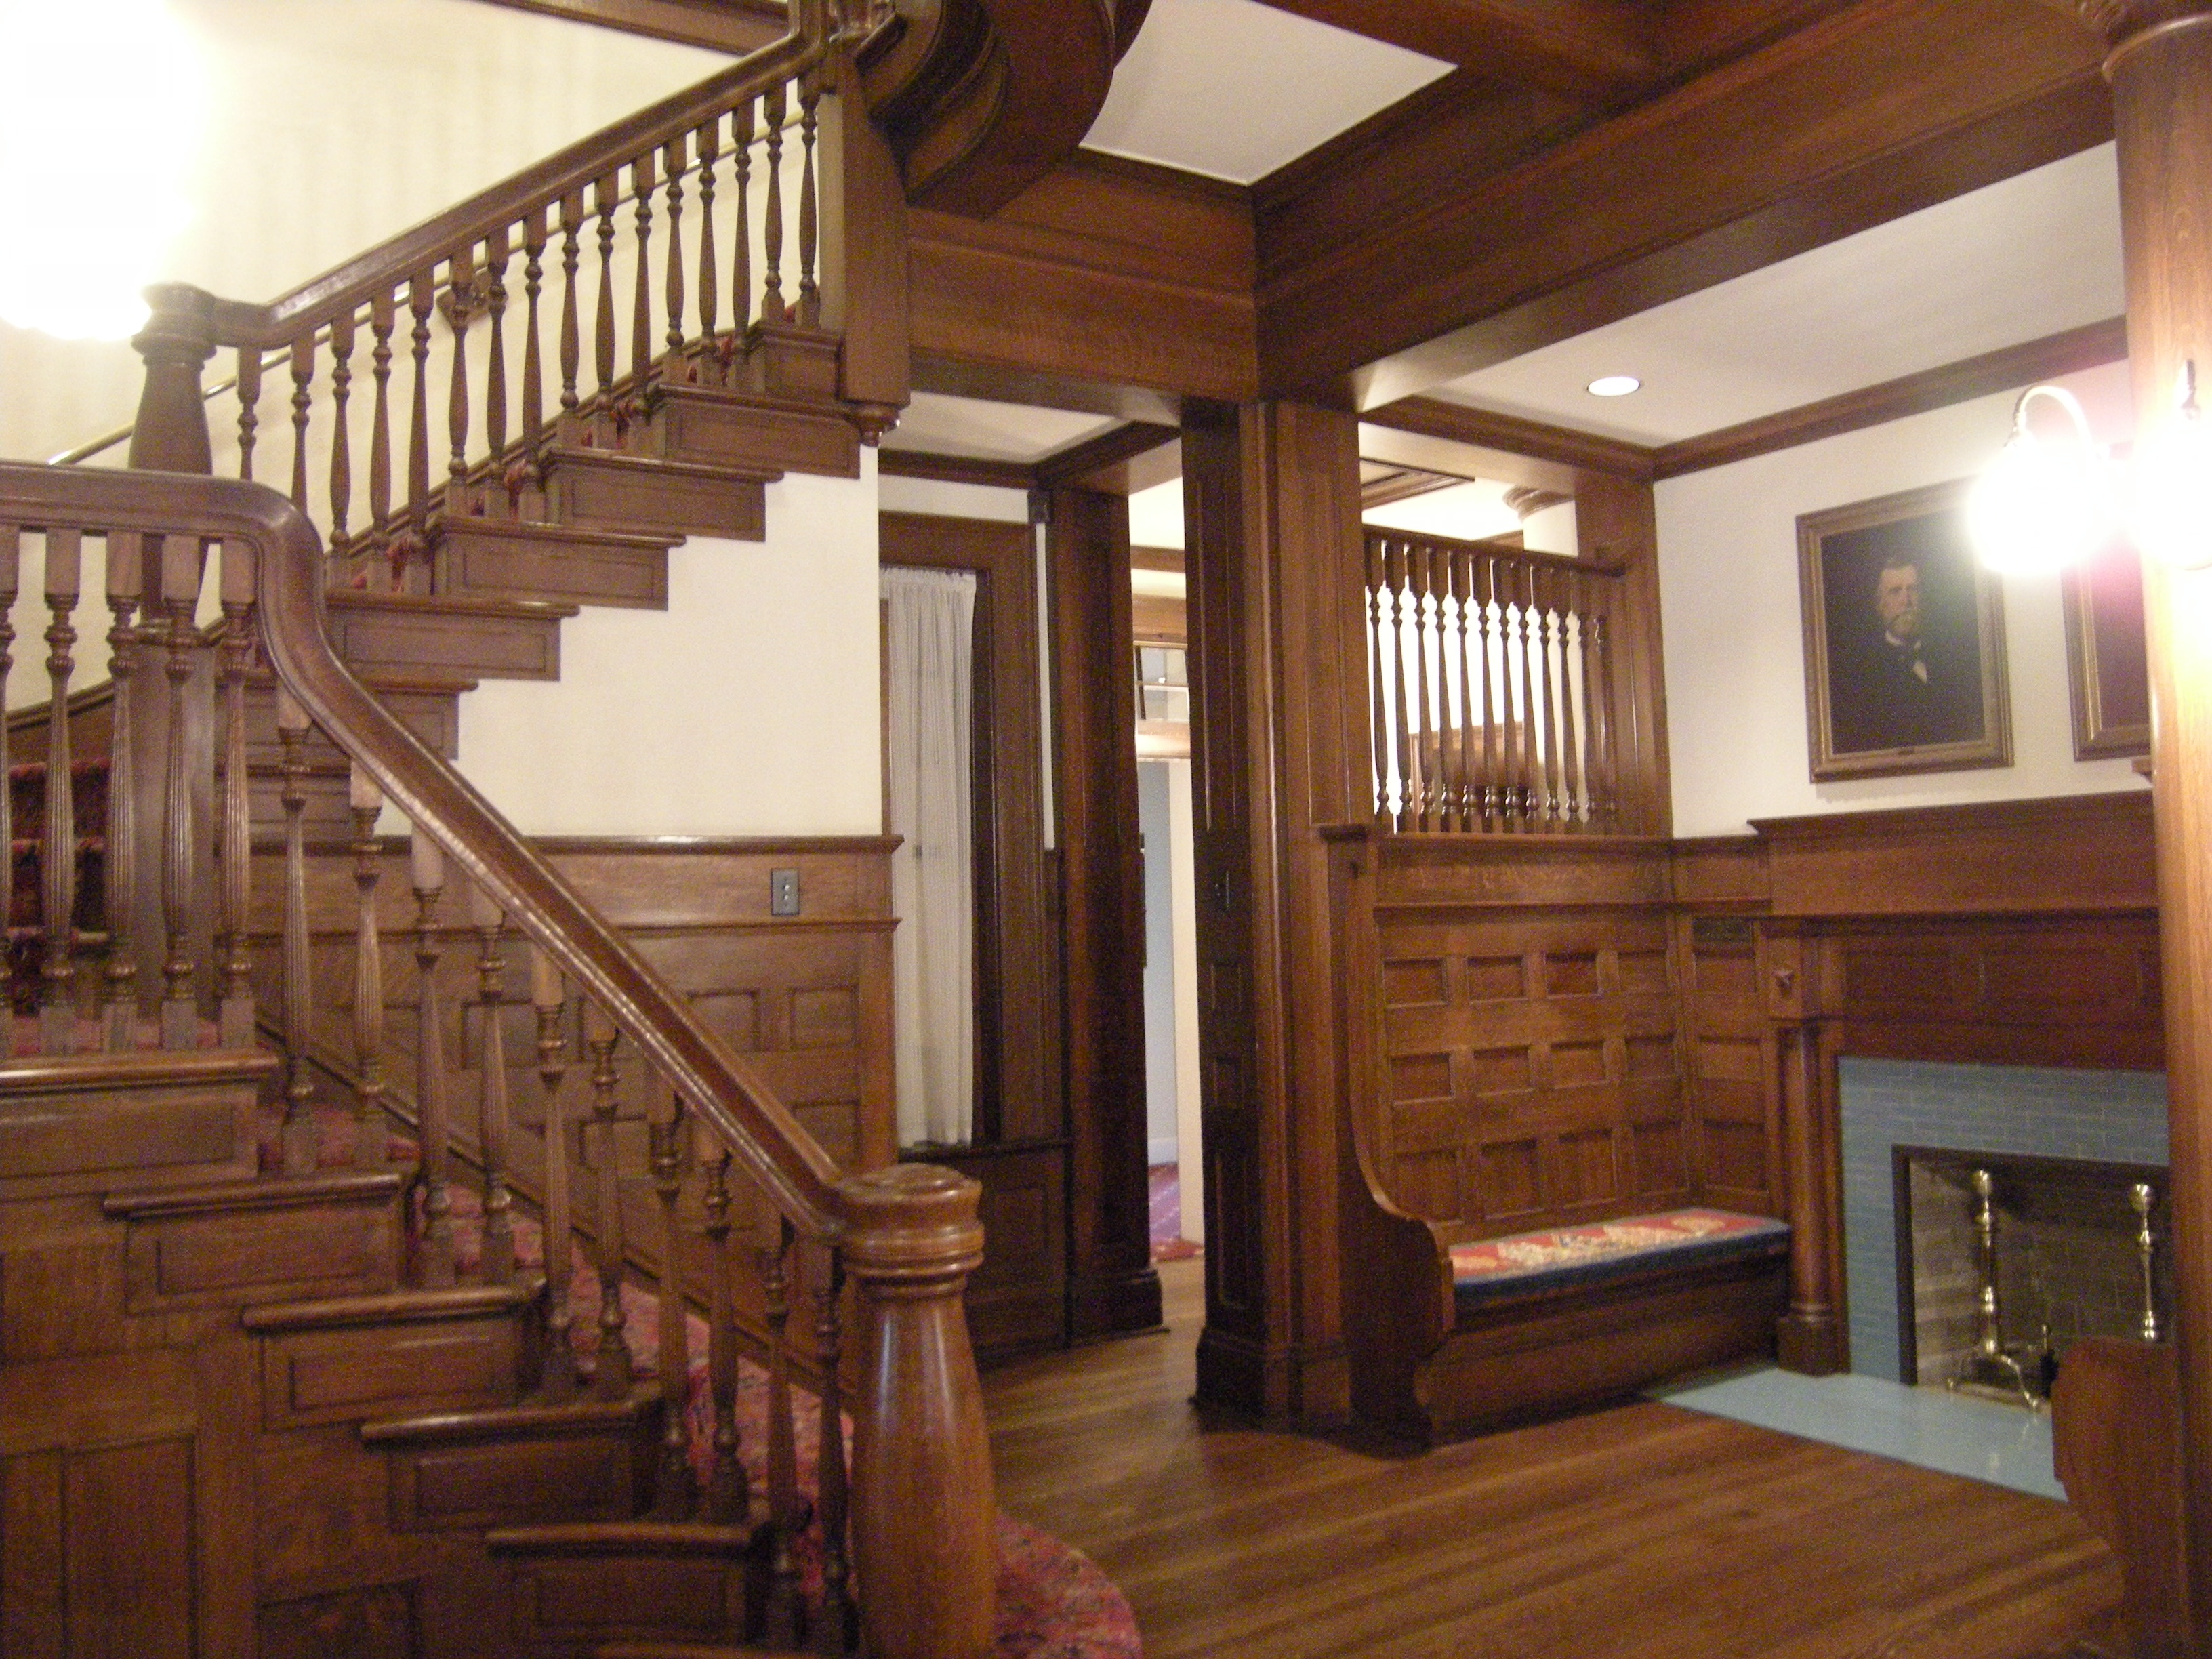 File dallas a h belo house interior wikimedia for Interior home